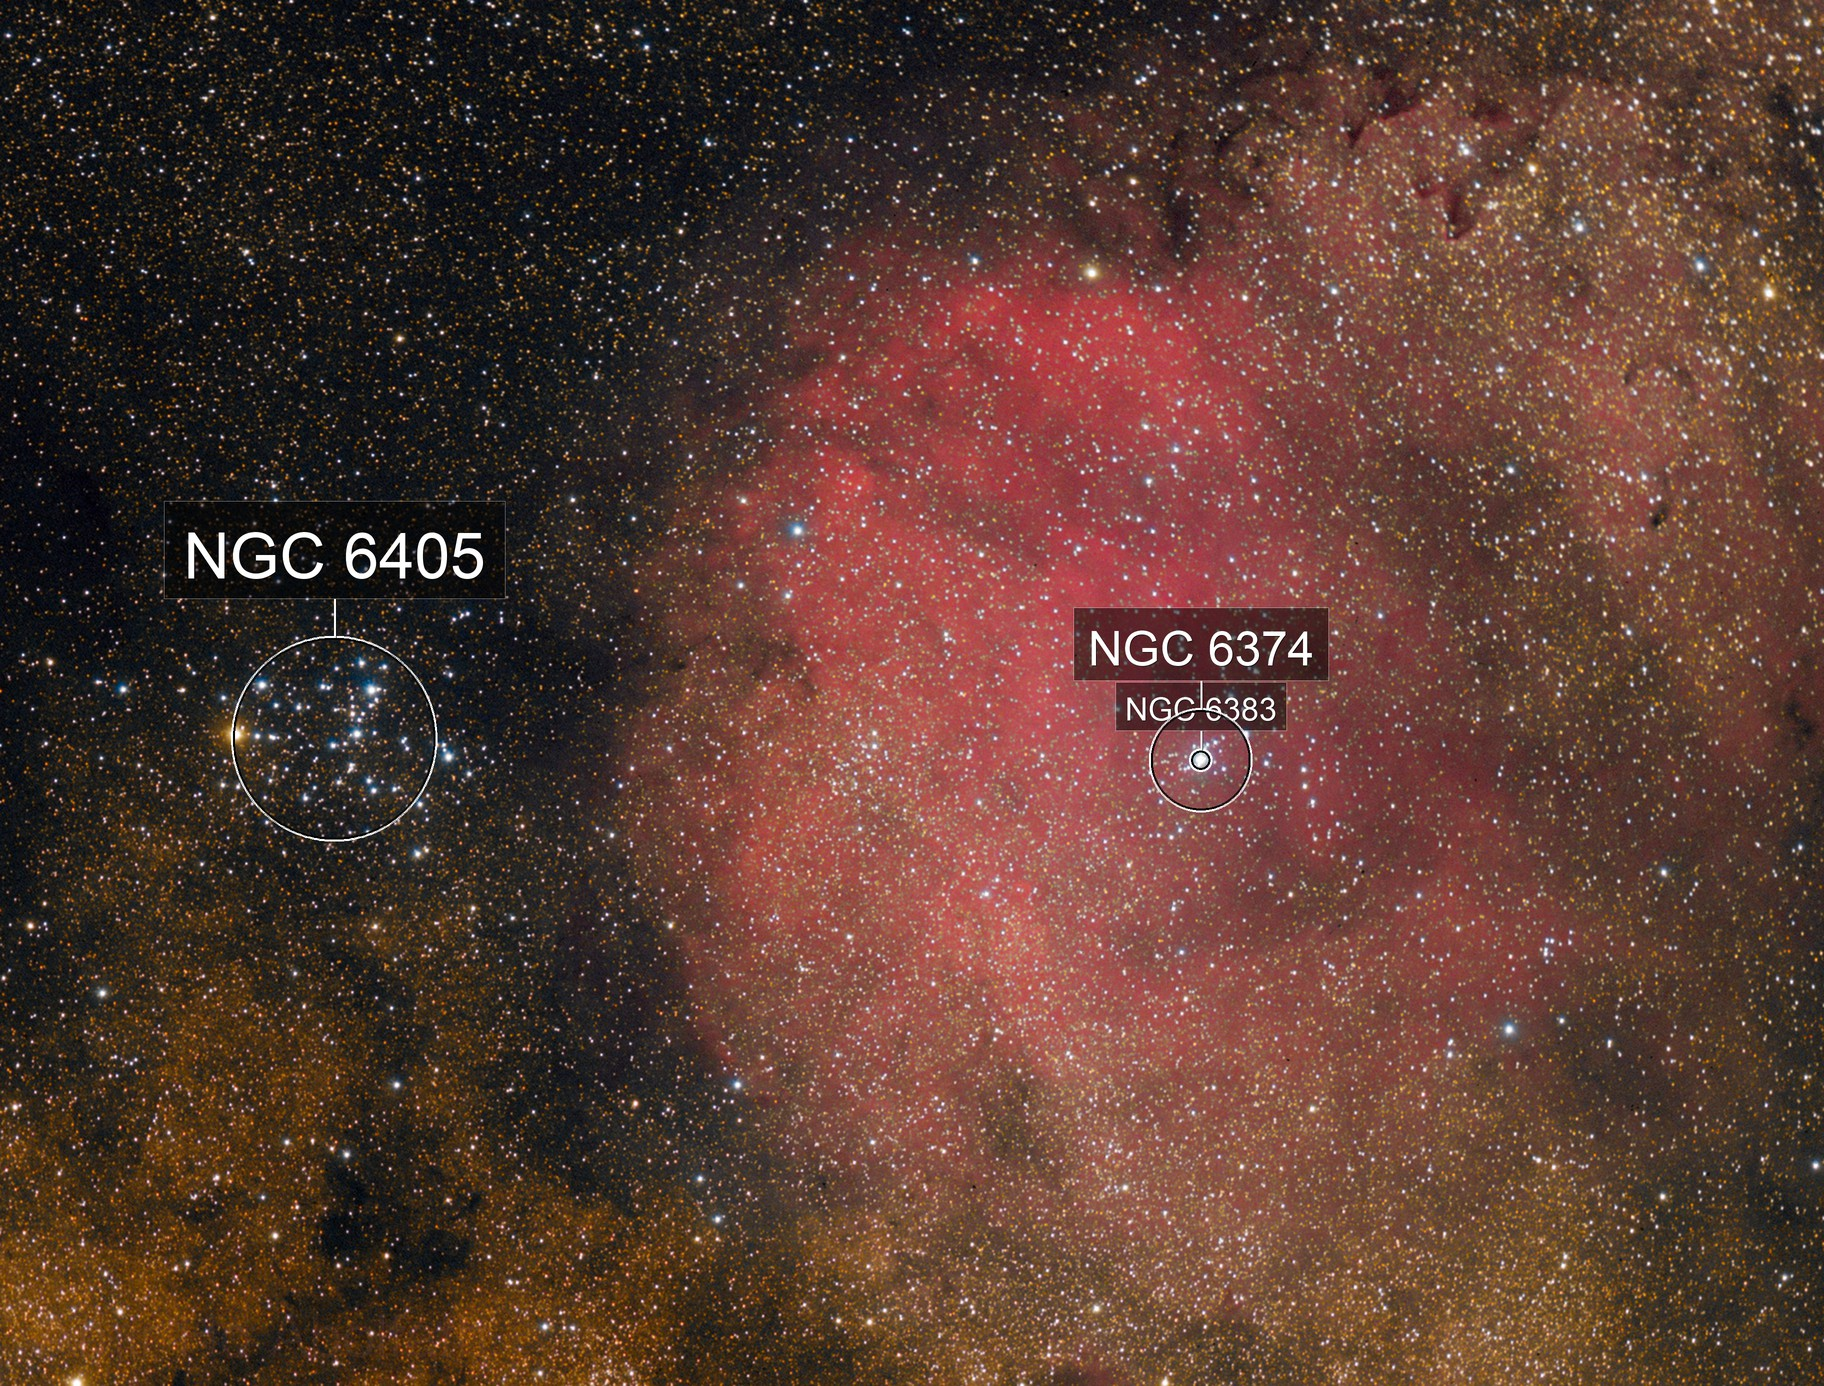 SH2-12 AND BUTTERFLY CLUSTER